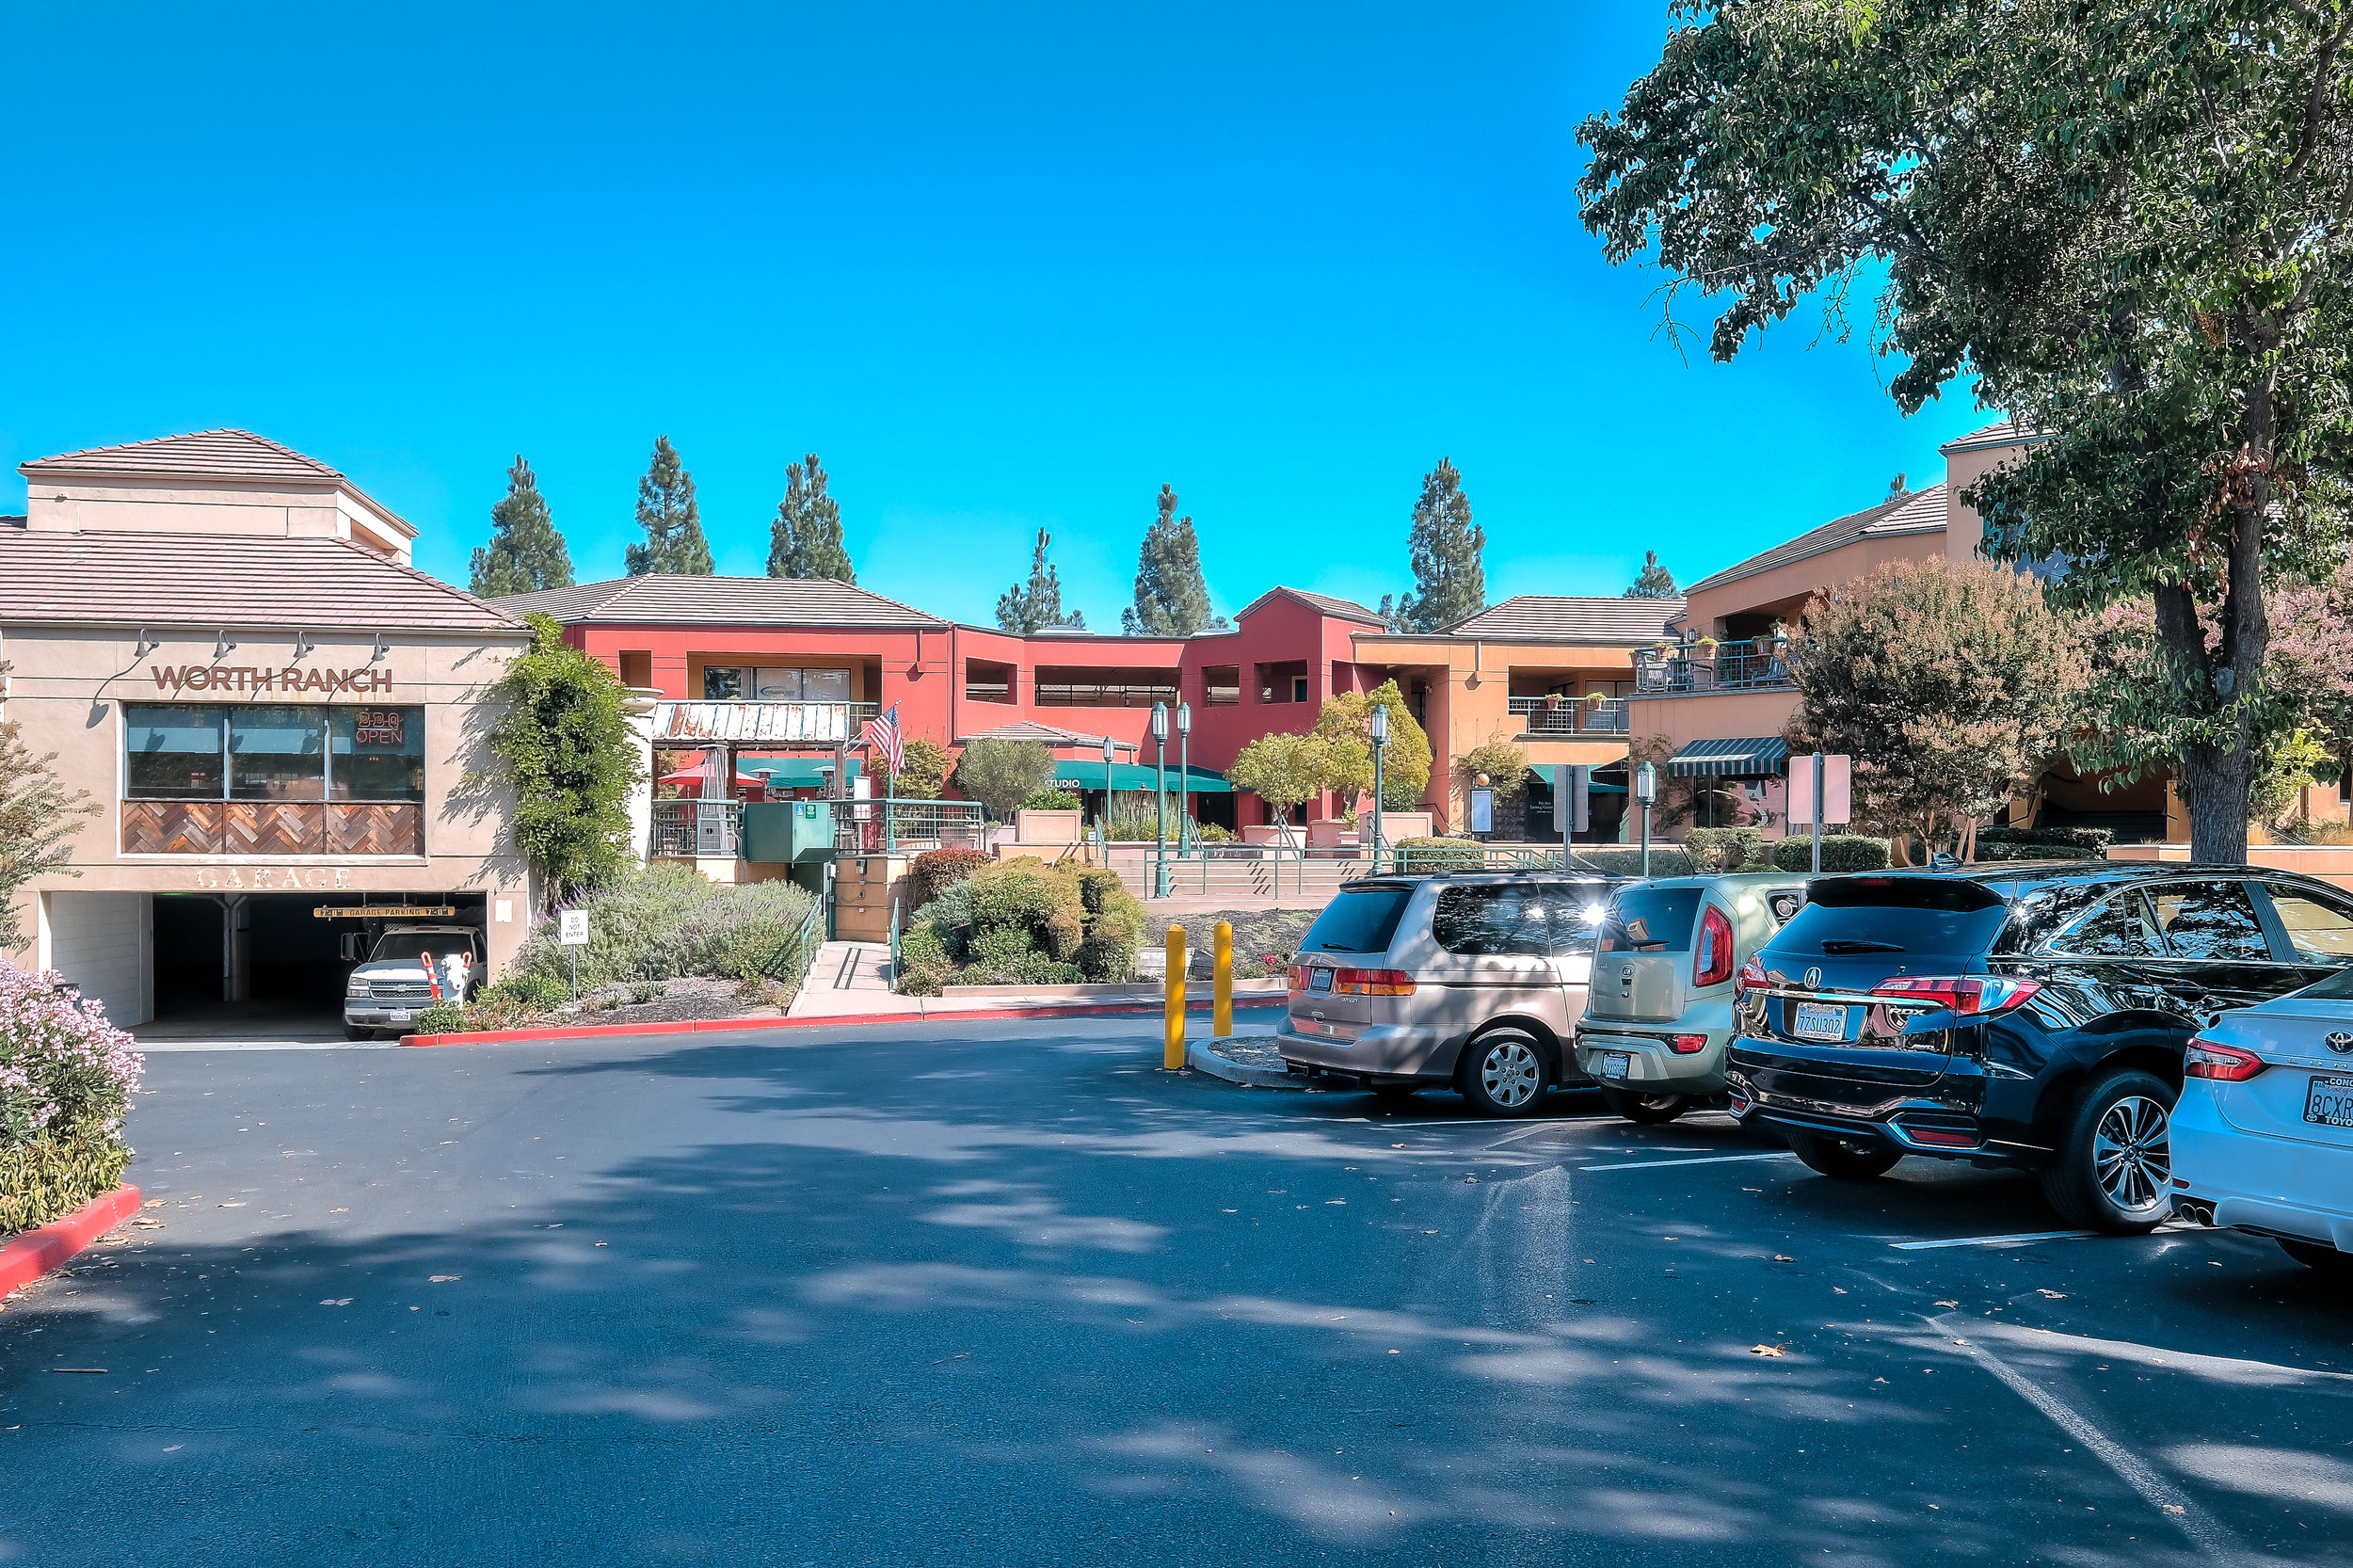 2410 San Ramon Valley Blvd, San Ramon, CA 94583 59,498 SF Two-Story Non-Anchored Retail Center $15,800,000